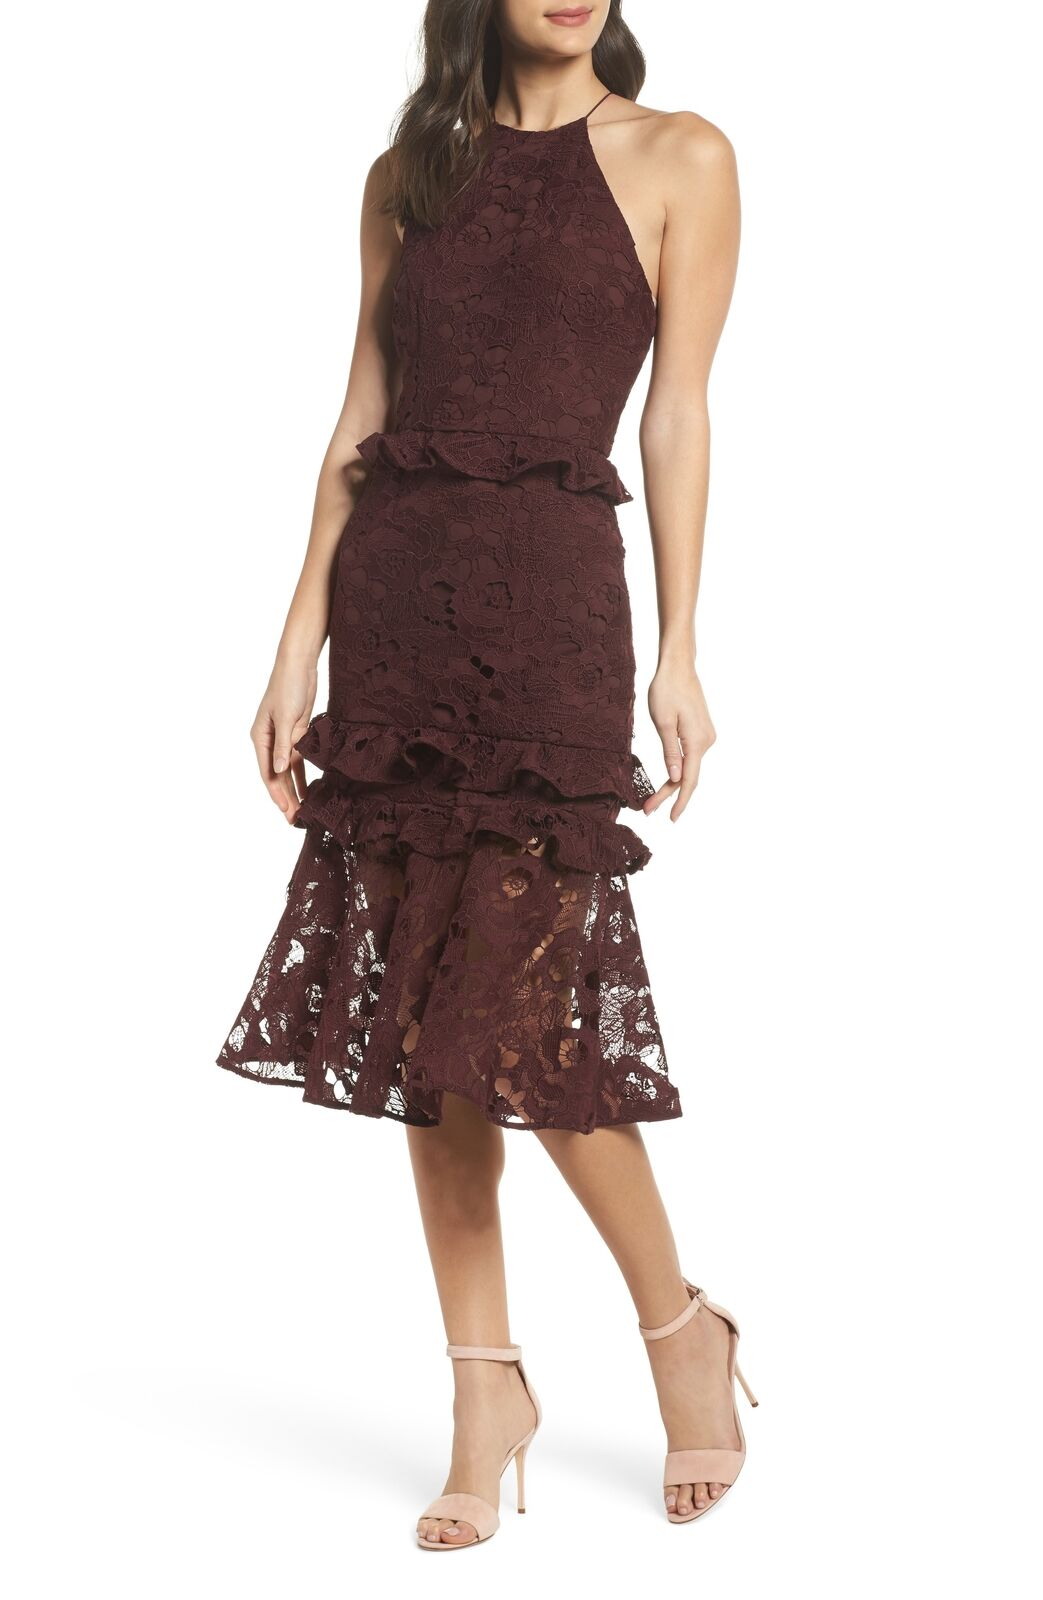 NEW COOPER ST Enchantment Lace Midi DRESS  220 Size US 2 EURO 36 NORDSTROM